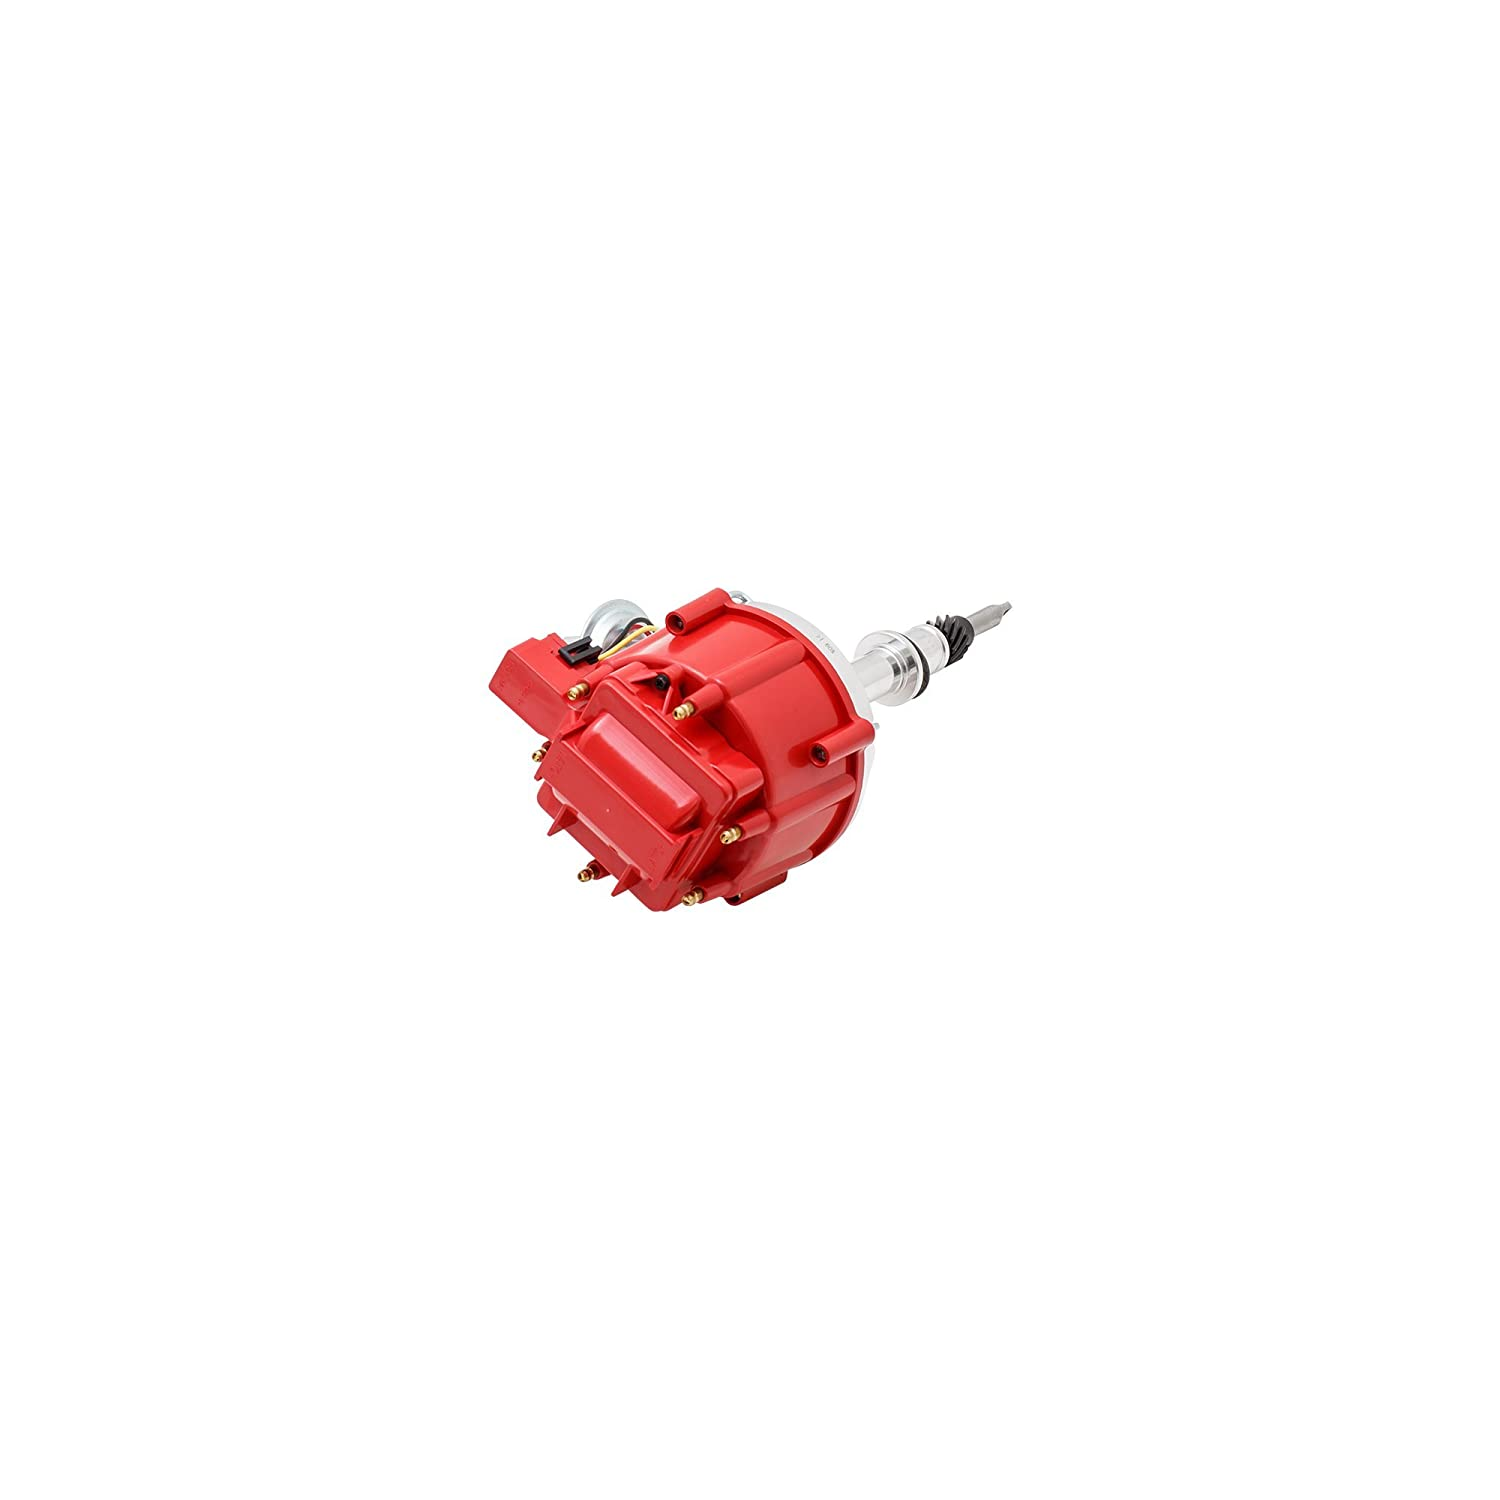 Top Street Performance JM6523R HEI Distributor with Red OEM Cap (65K Volt Coil)